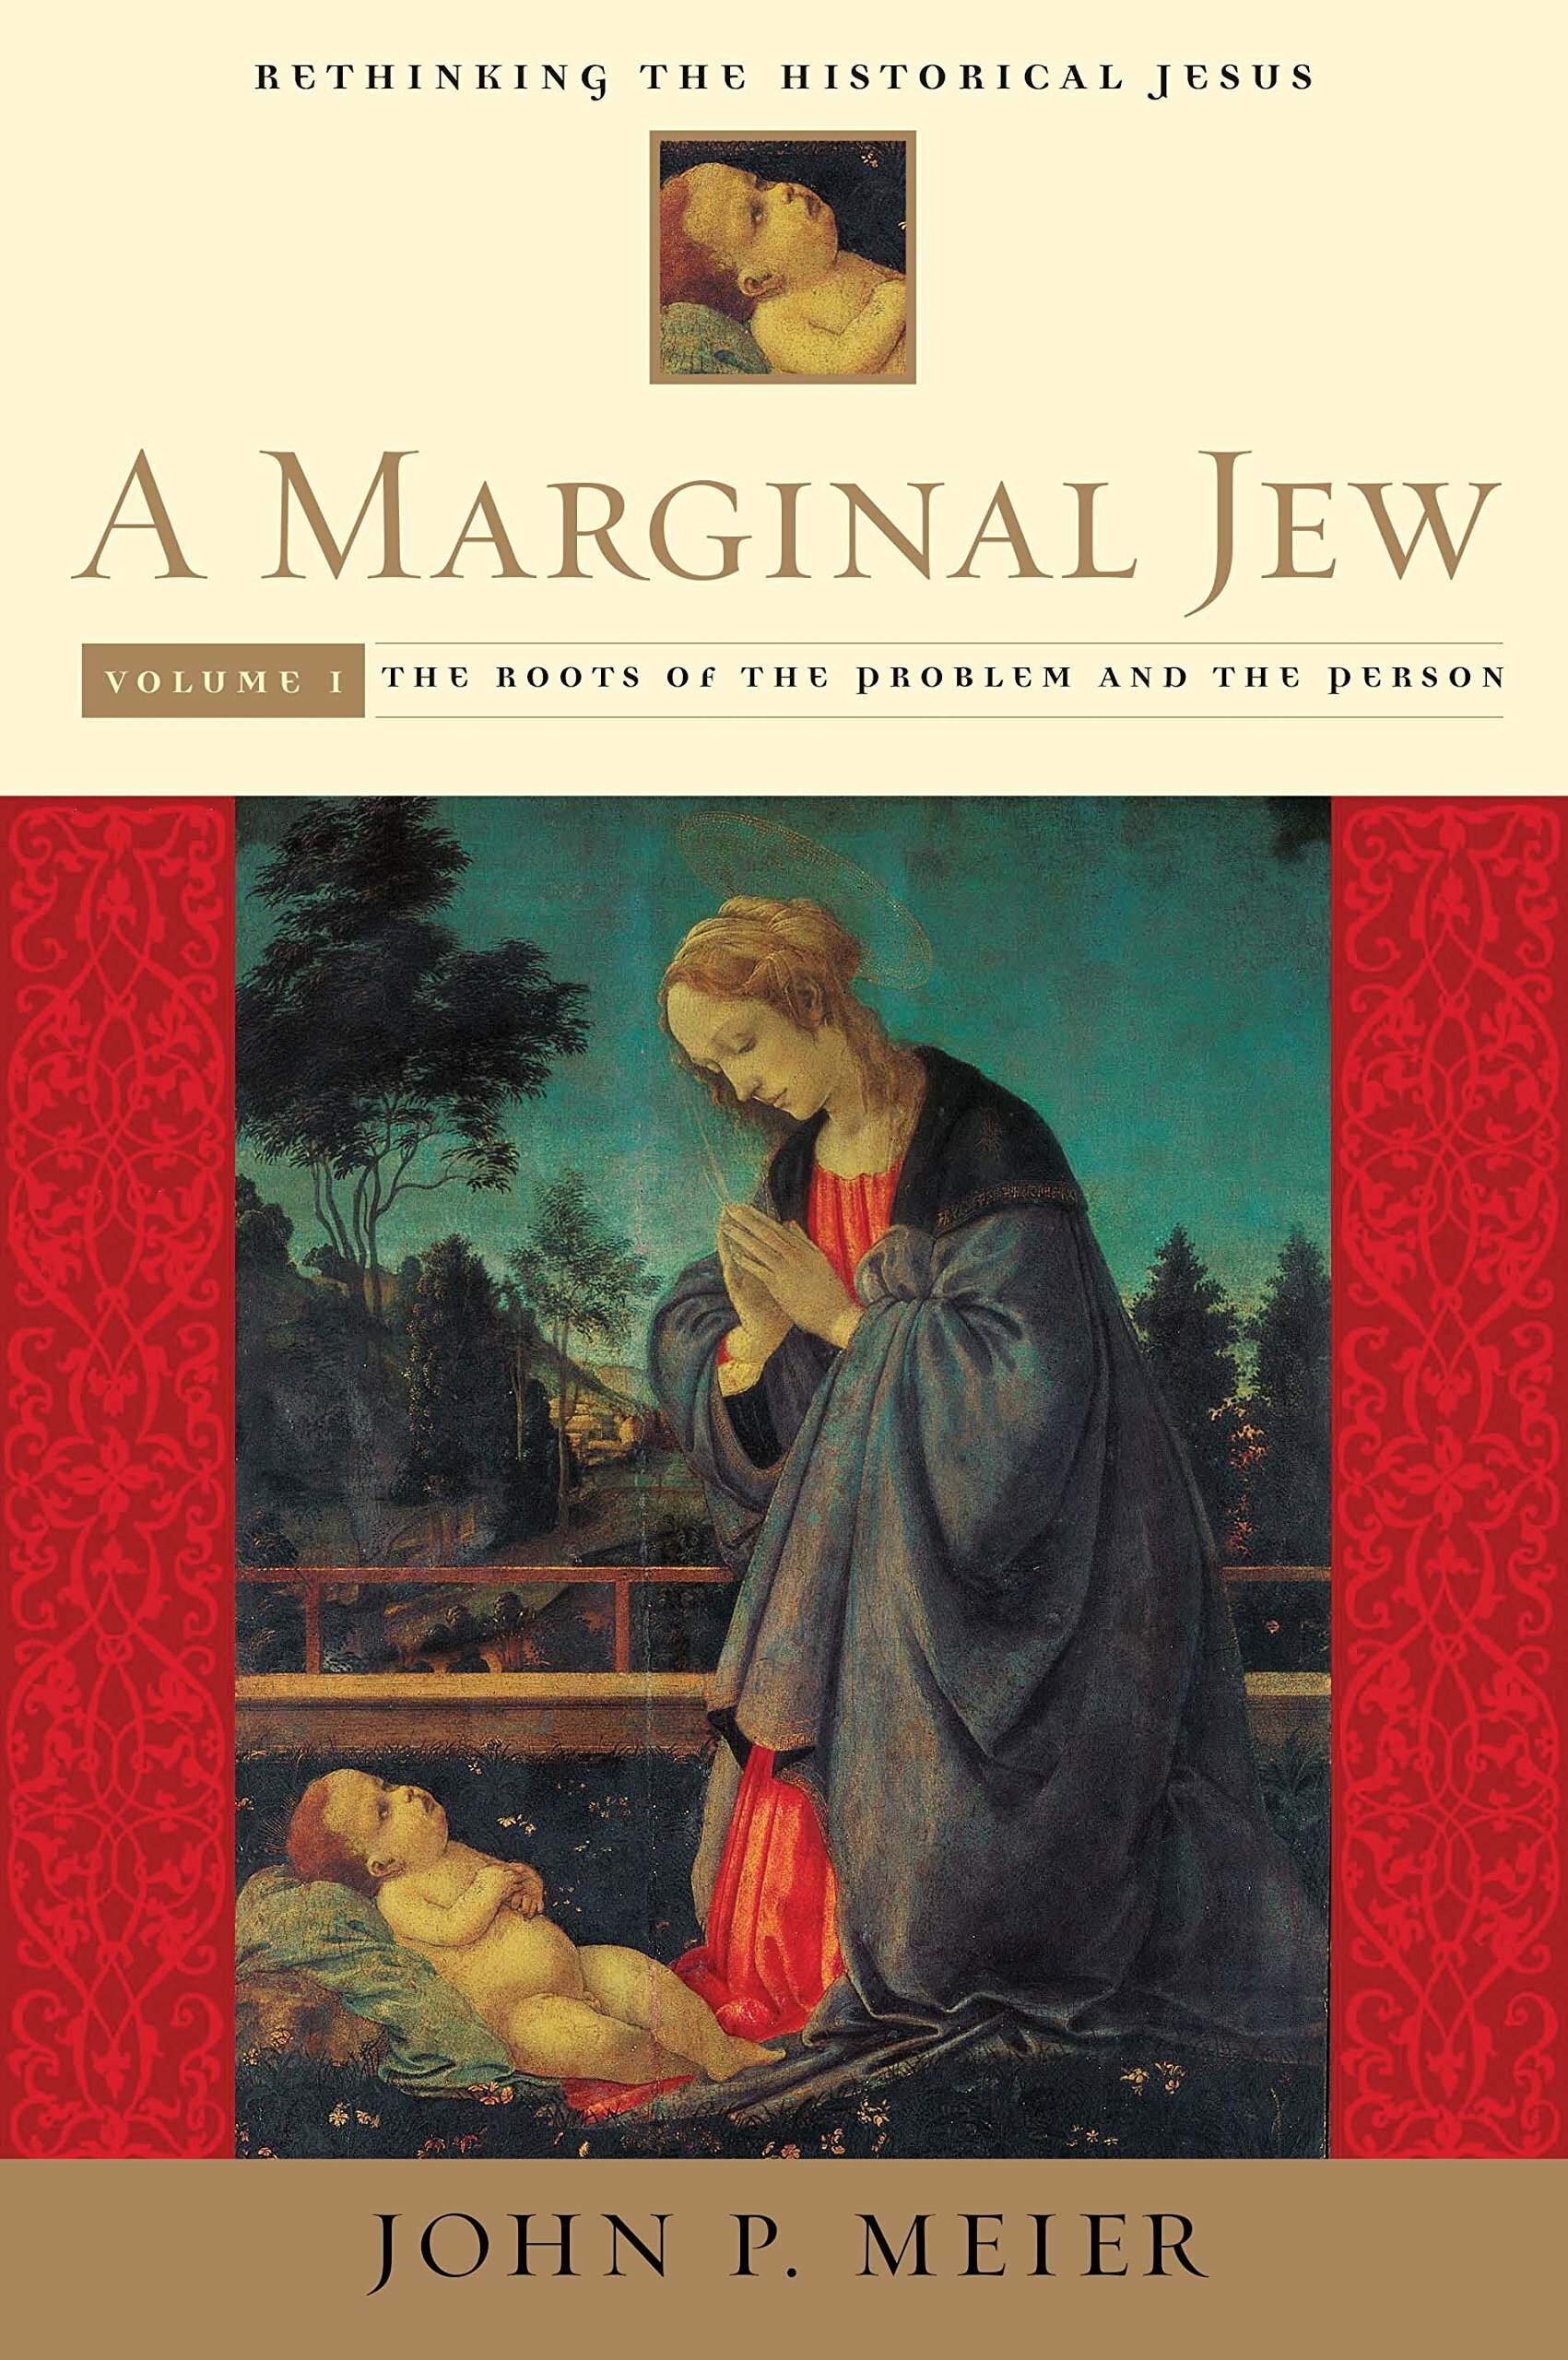 A Marginal Jew, Rethinking the Historical Jesus: Volume One, the Roots of the Problem and the Person